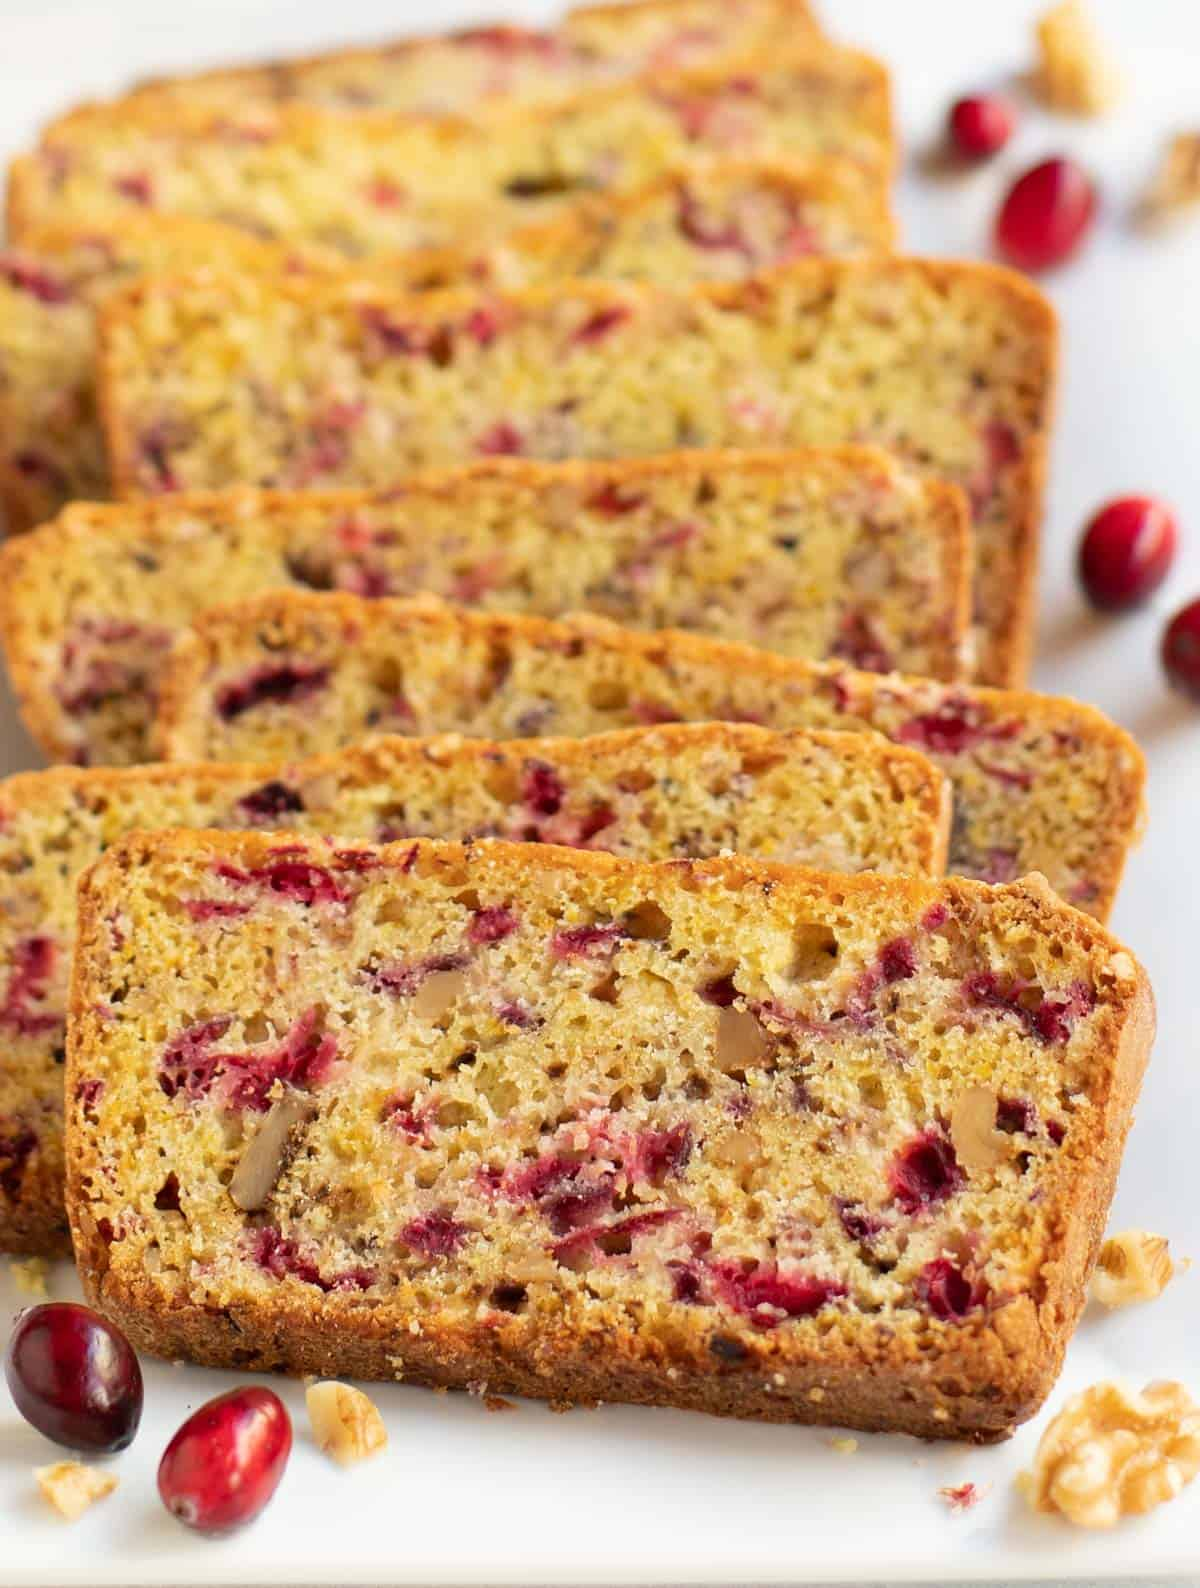 Cranberry Nut Bread sliced on a plate